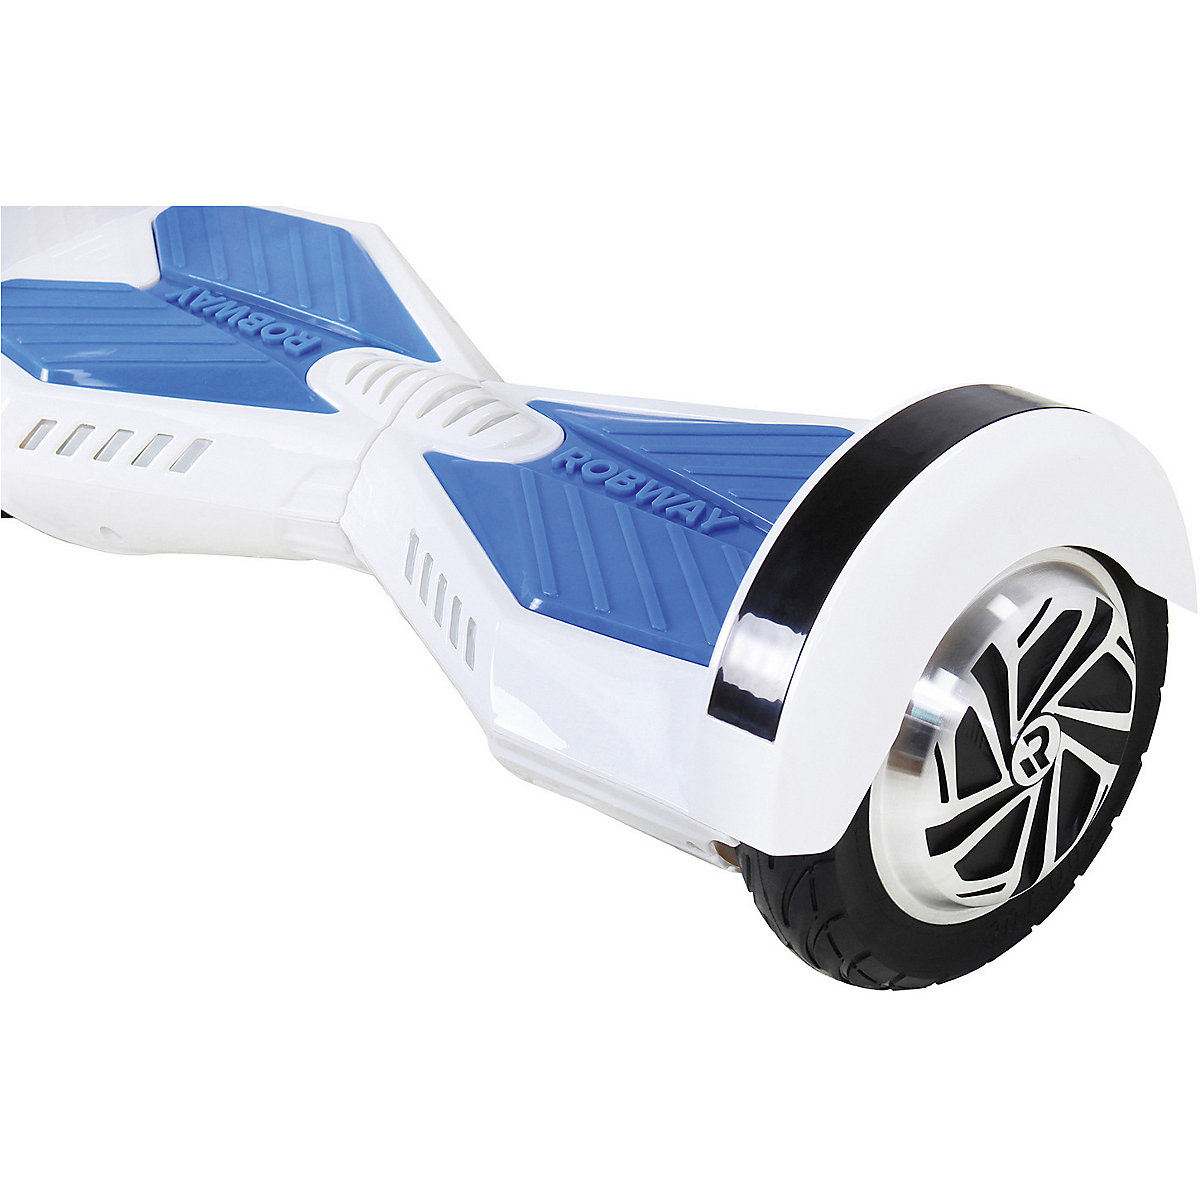 e balance hoverboard robway w2 8 zoll mit app funktion wei blau robway mytoys. Black Bedroom Furniture Sets. Home Design Ideas